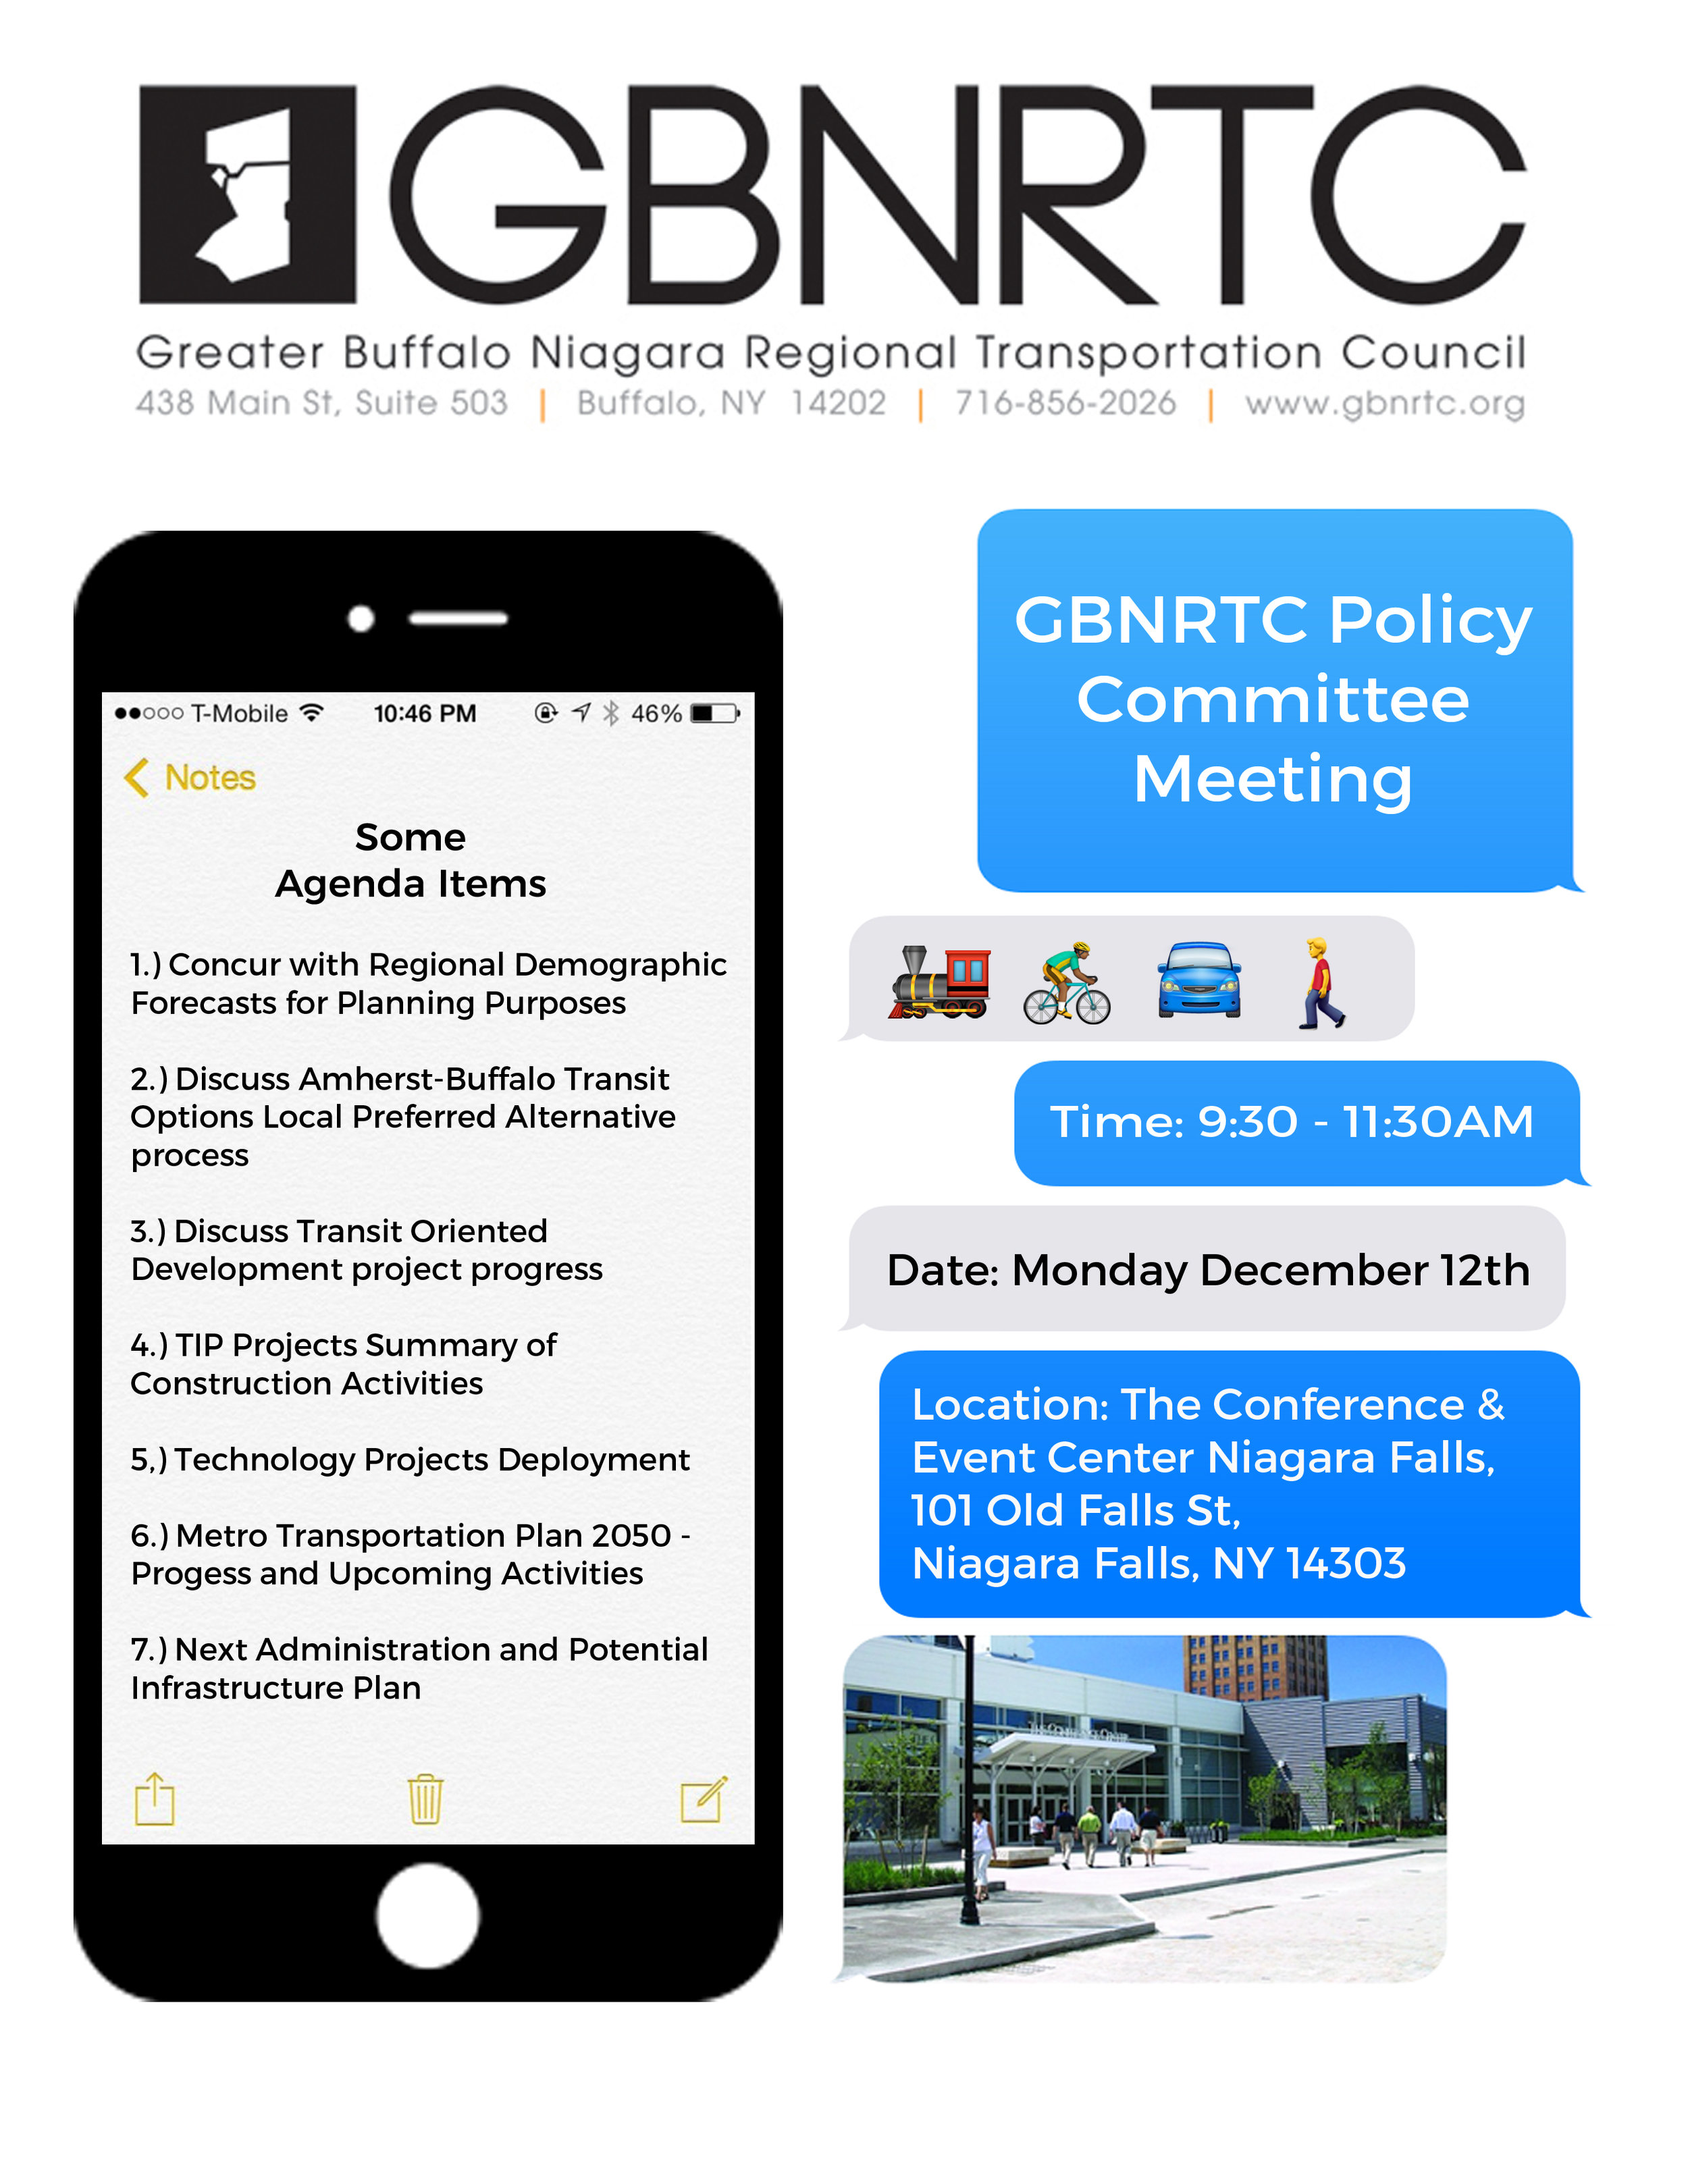 GBNRTC Policy Committee Meeting